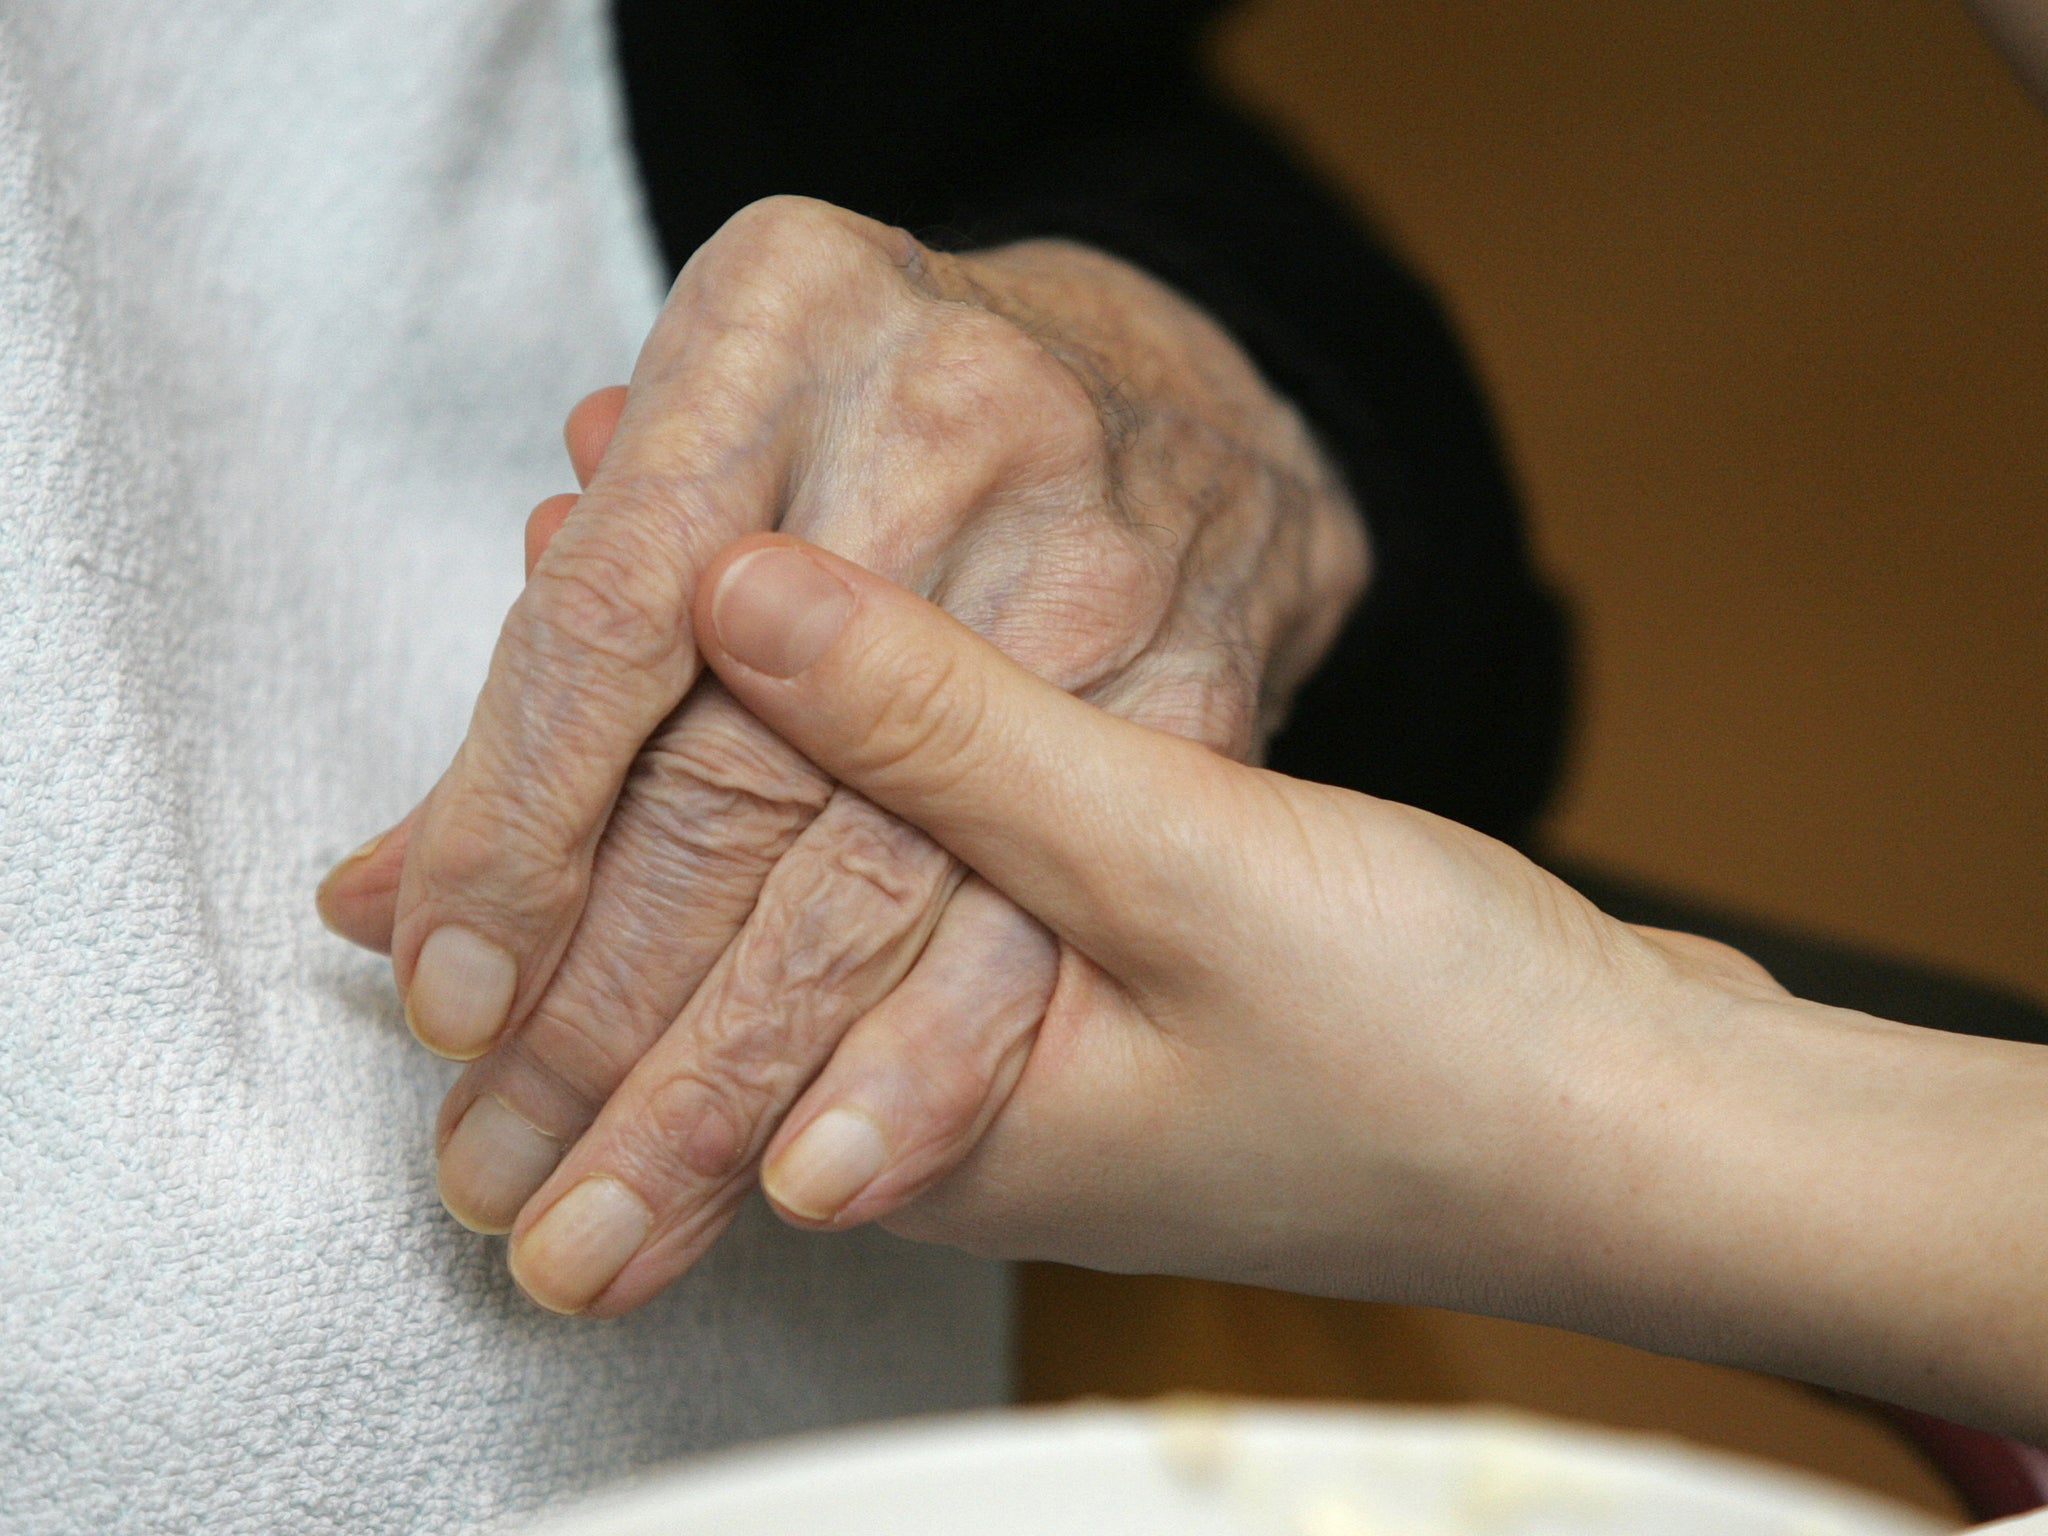 One In Three UK Nursing Homes Failing Safety Checks Inspections Find